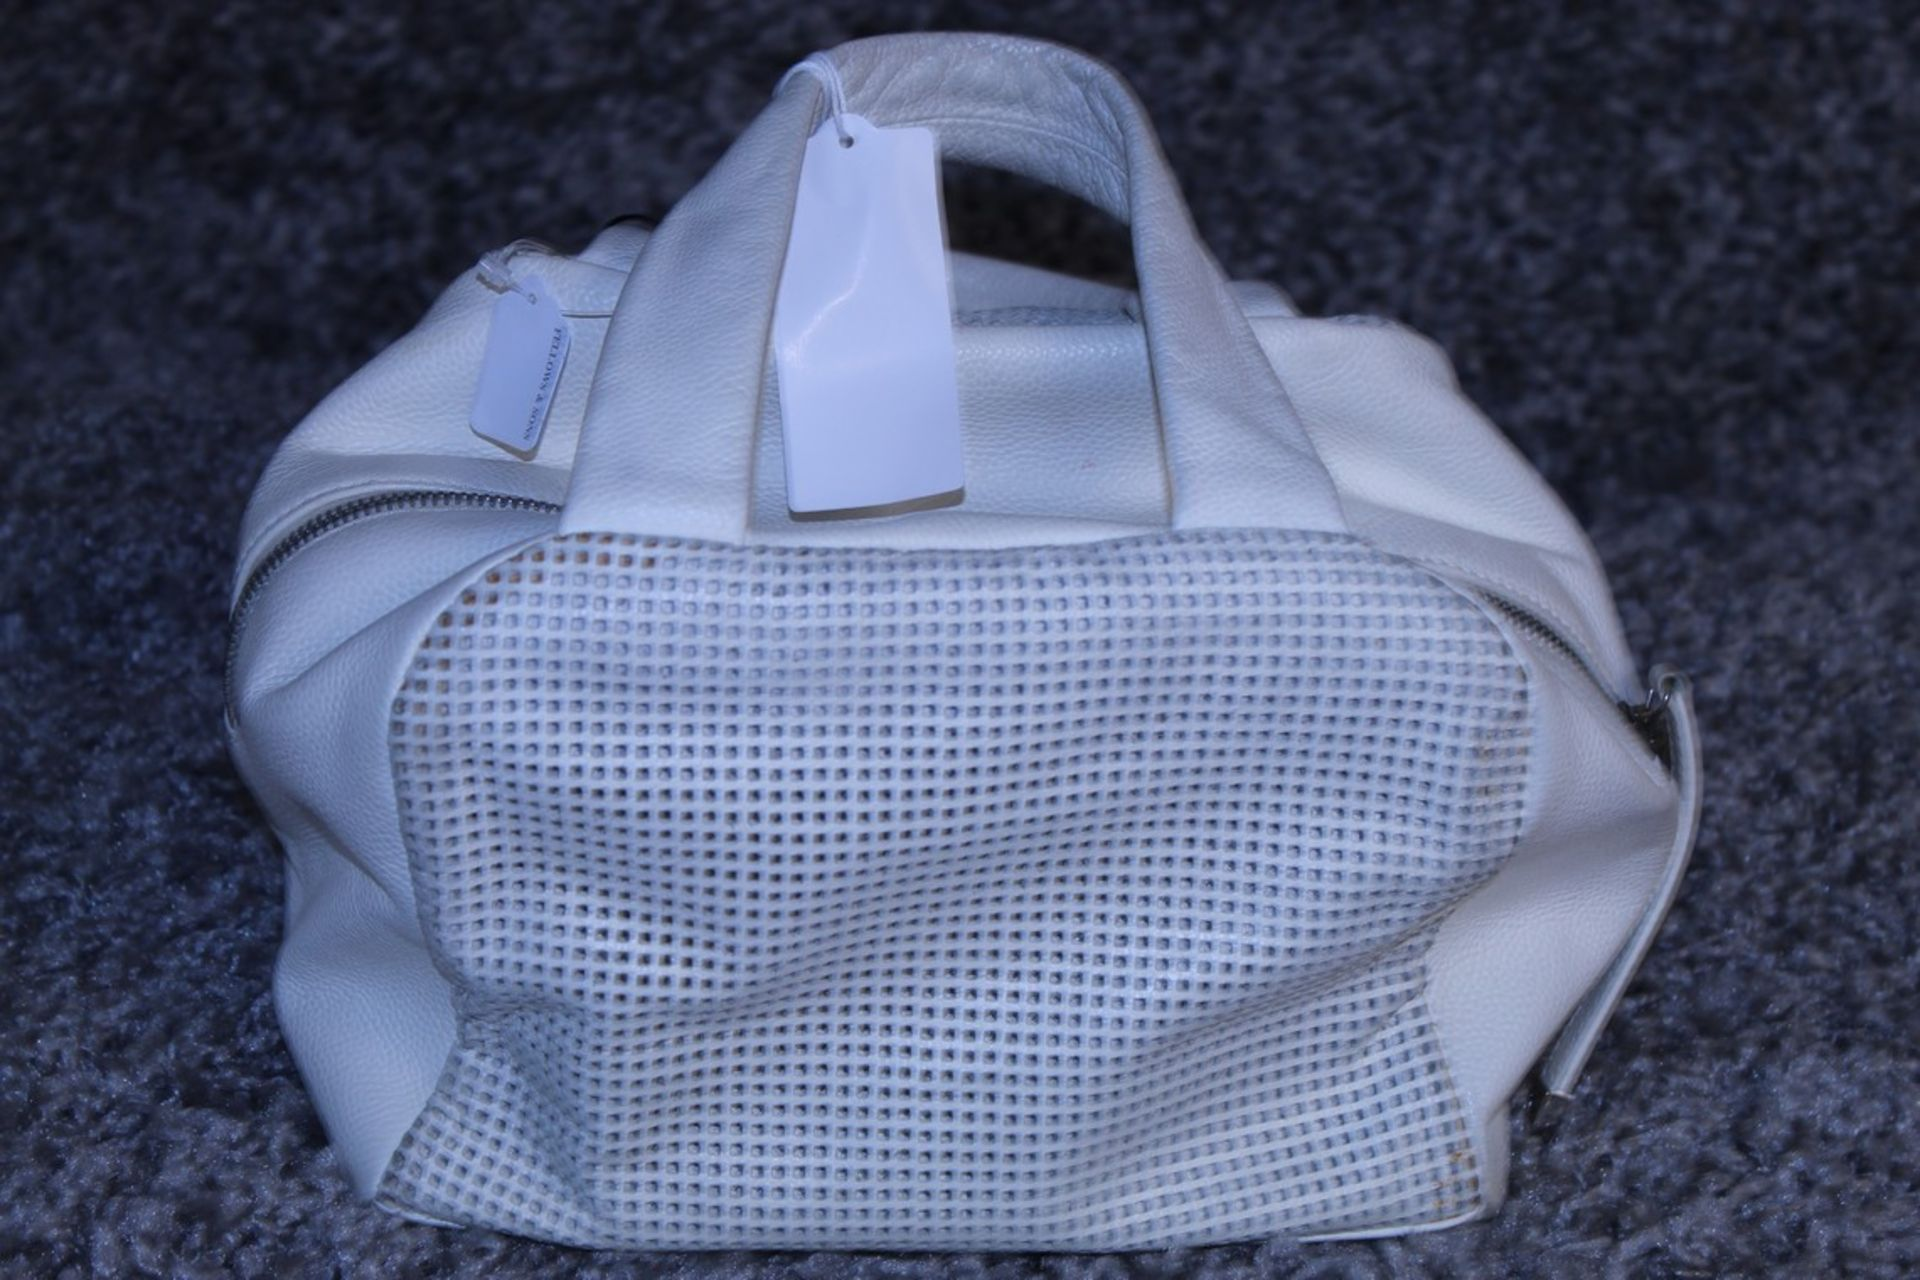 RRP £1700 Chanel Perforated Chain Shoulder Bag In Calf Leather Ivory With Gold Chain Handles ( - Image 3 of 4